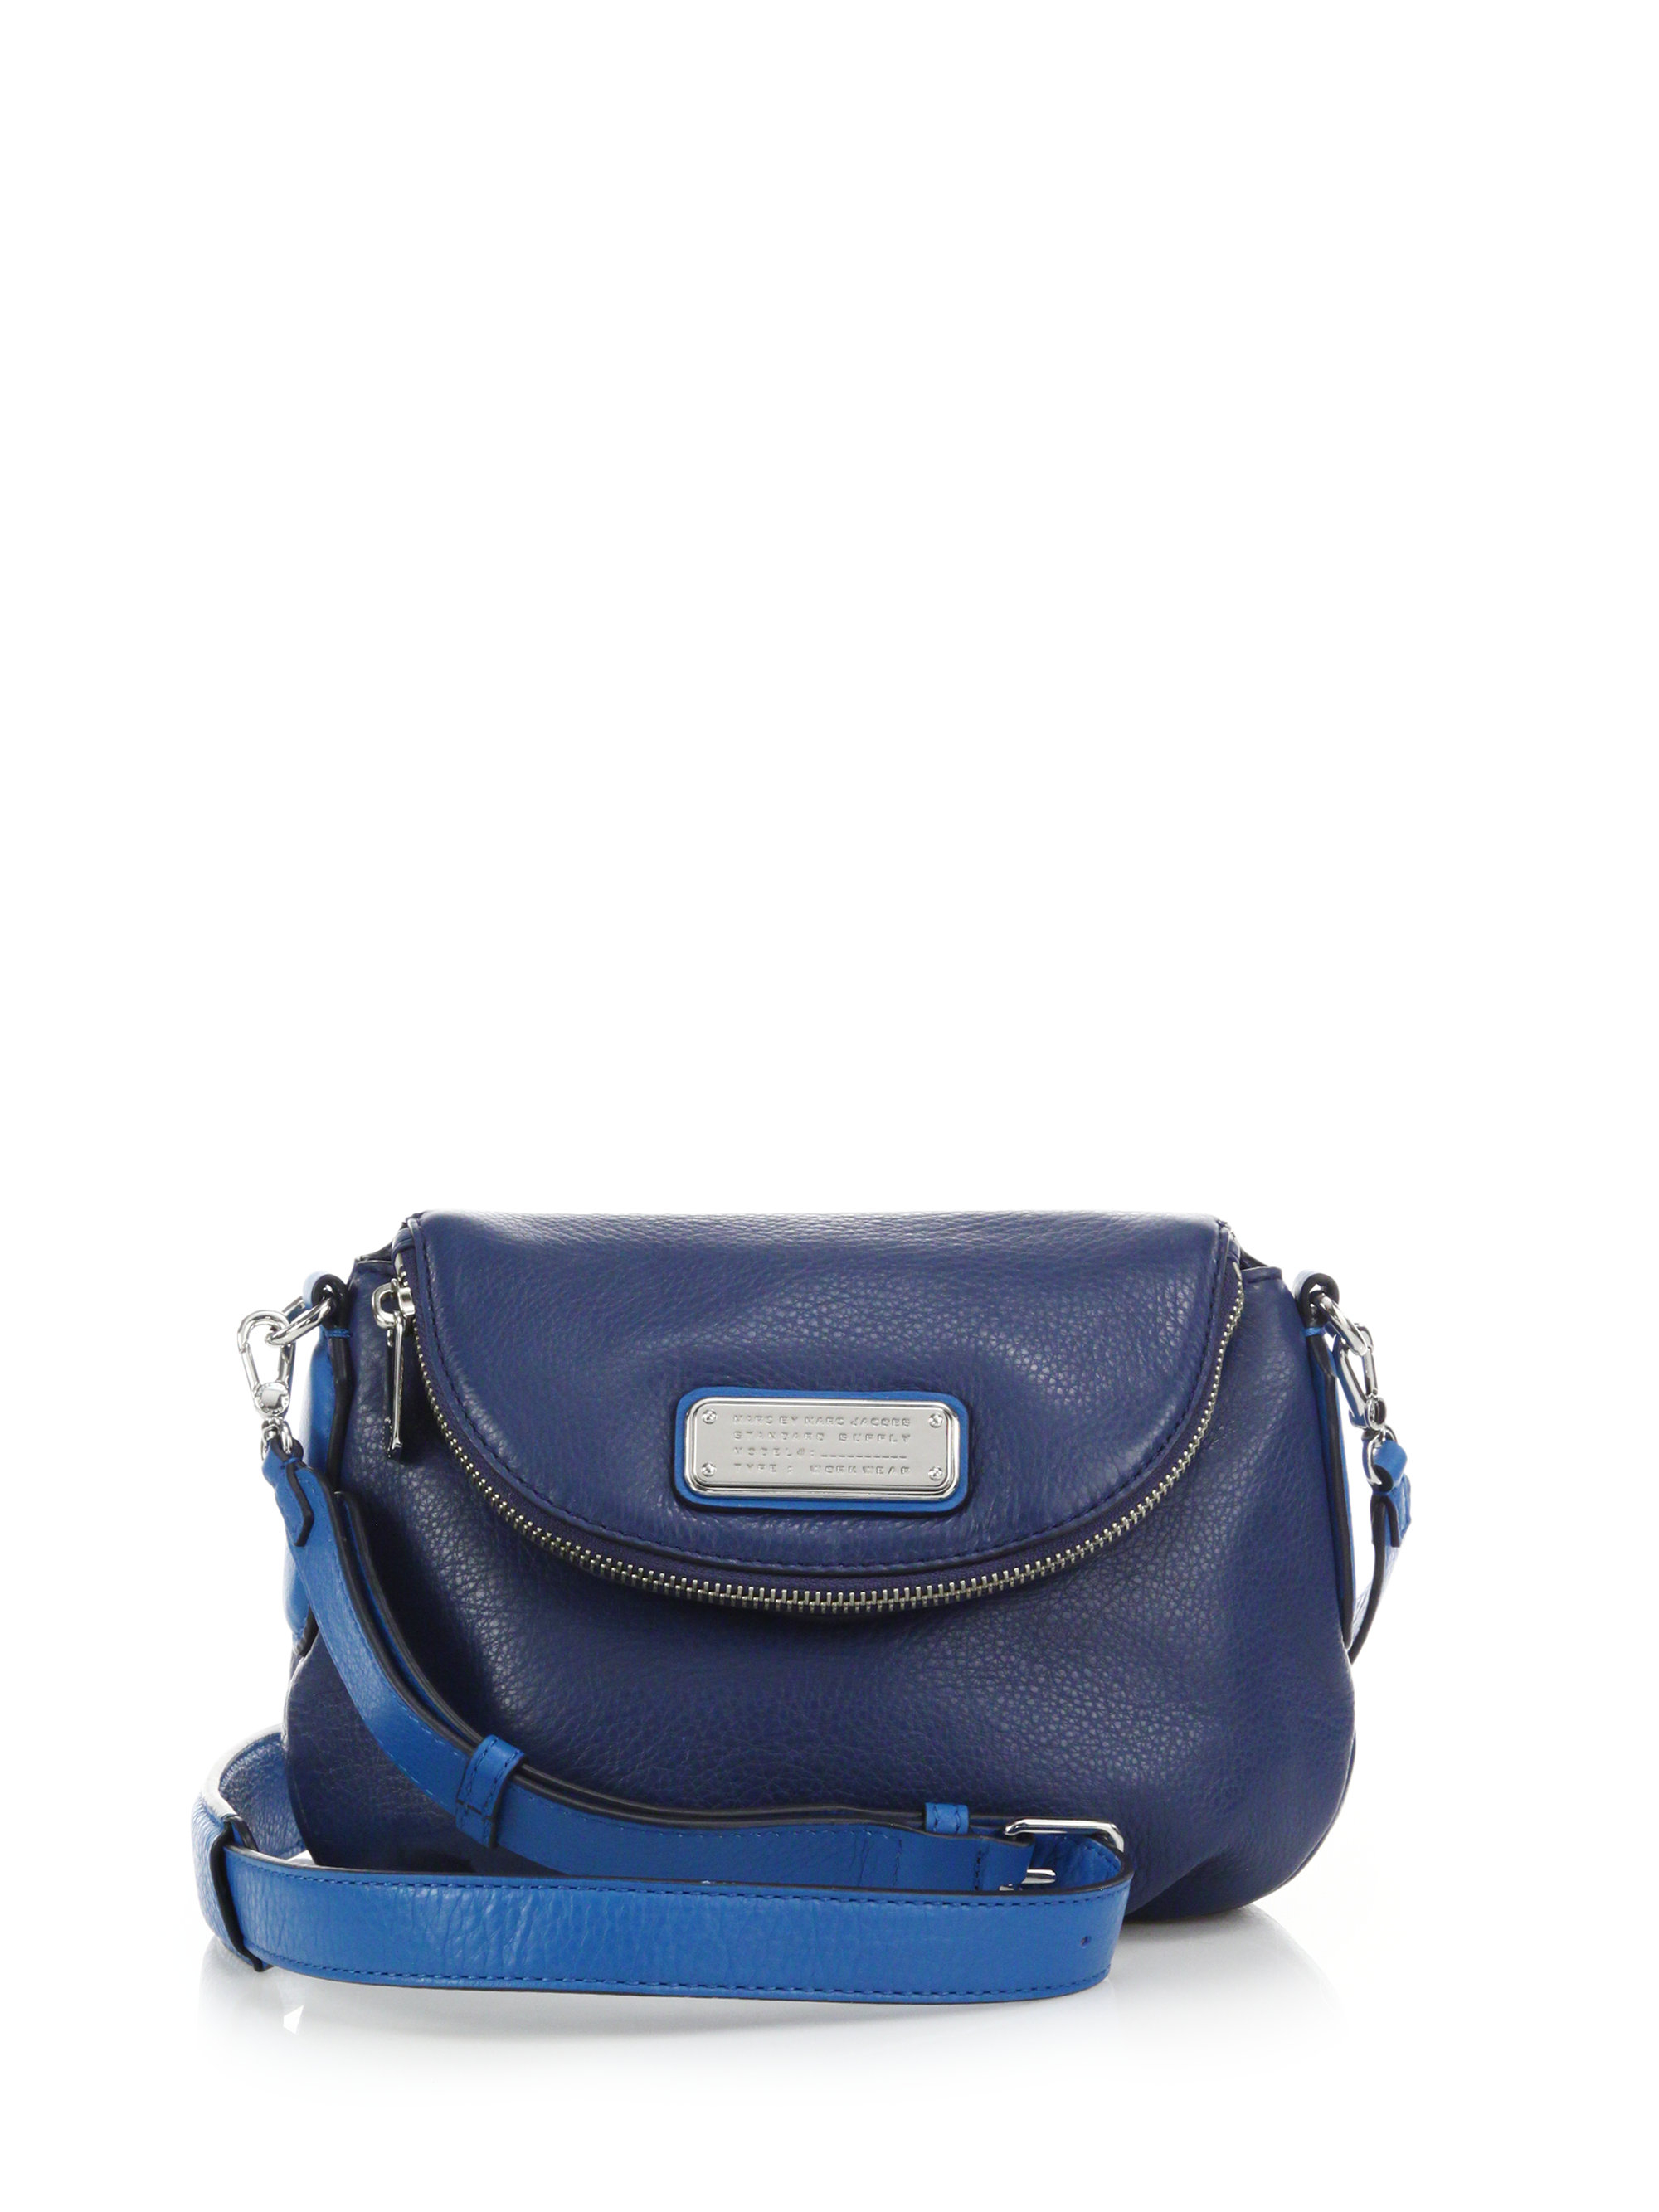 Gallery Previously Sold At Saks Fifth Avenue Women S Marc Jacobs Natasha